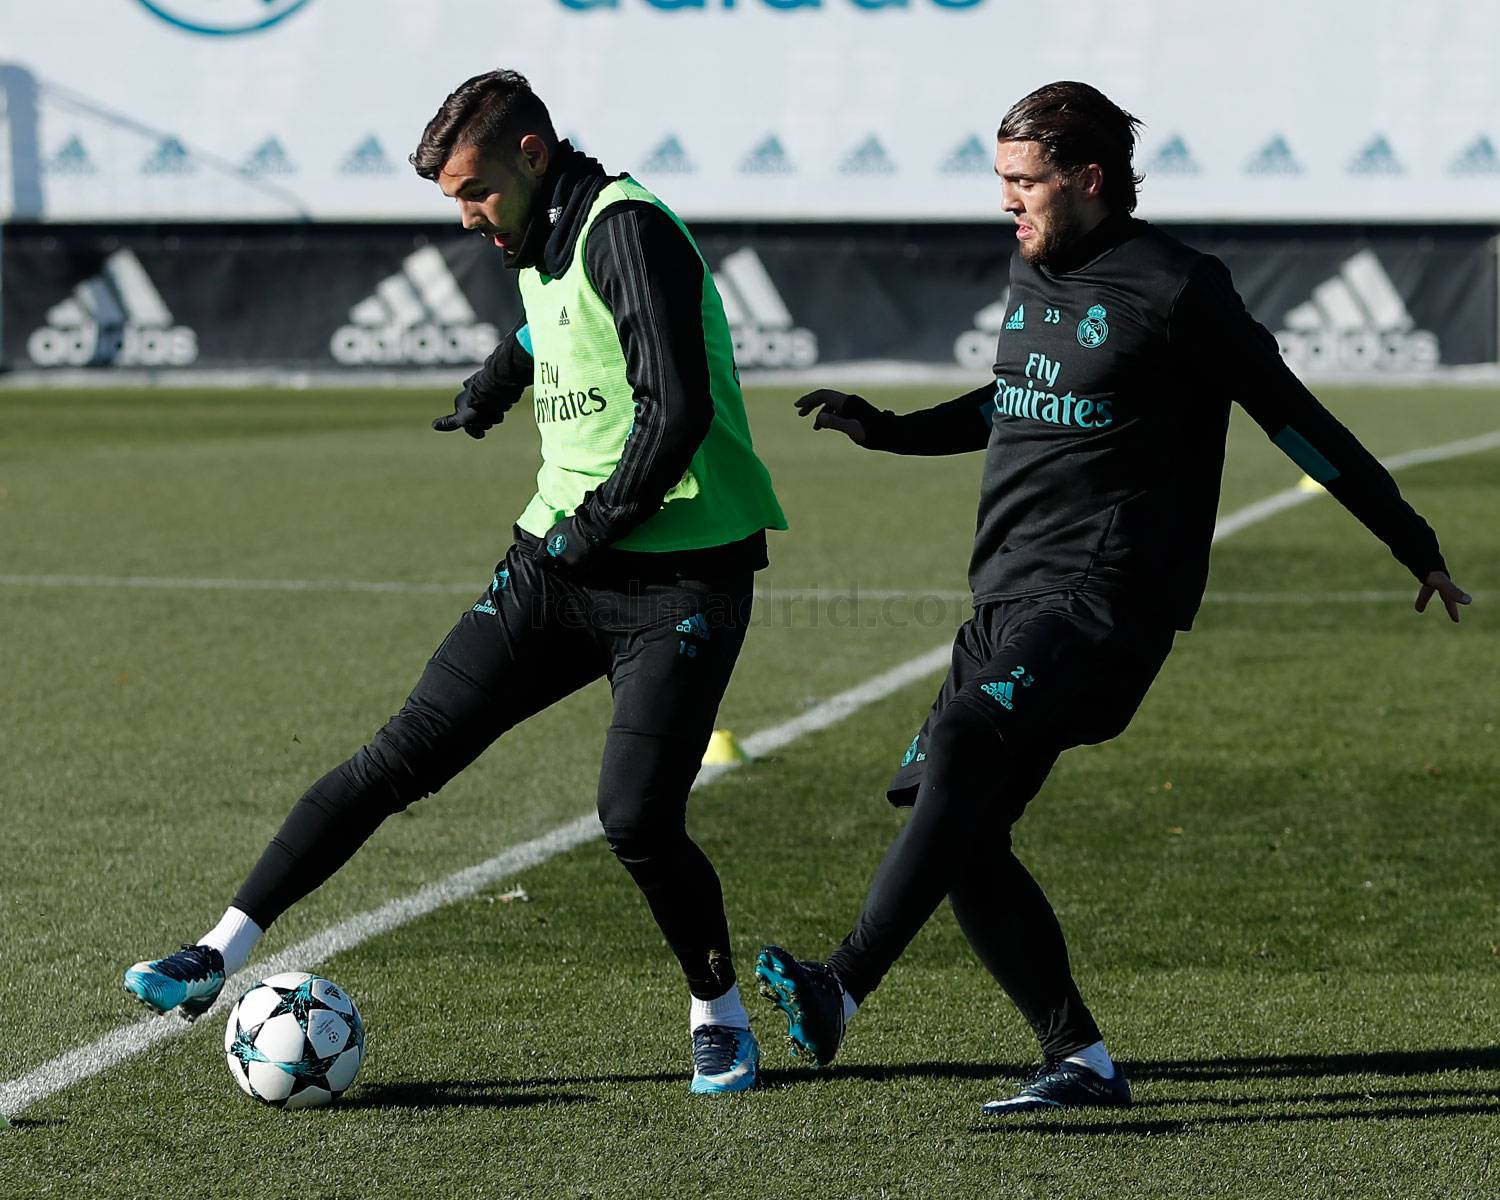 Real Madrid - Entrenamiento del Real Madrid - 04-12-2017